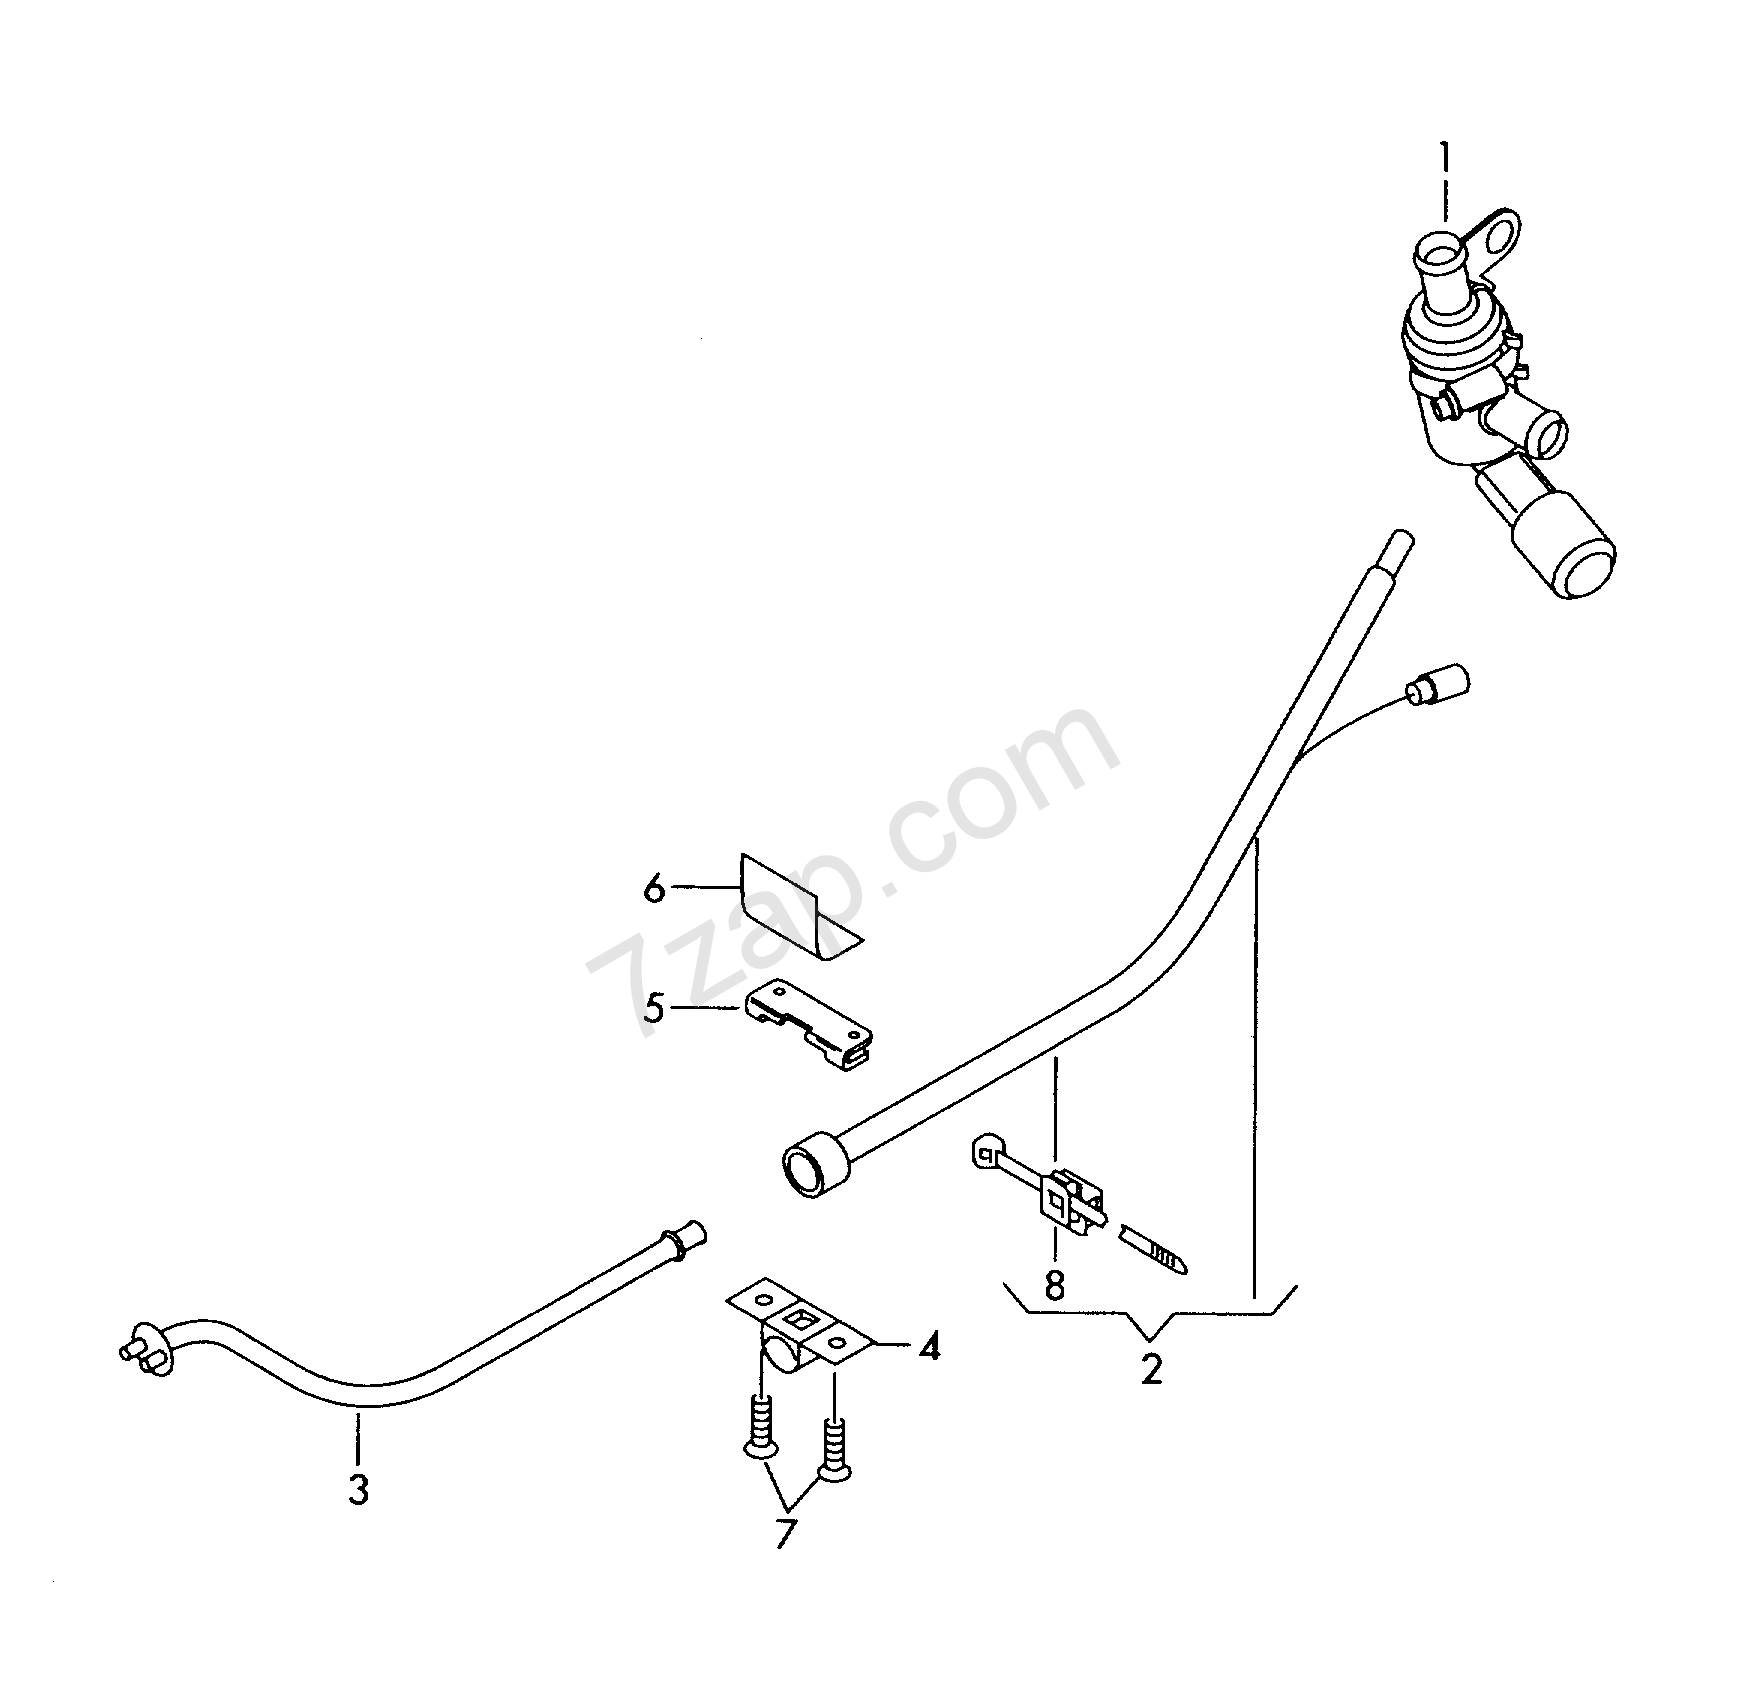 wiring harness for additional current supply Octavia (OCT